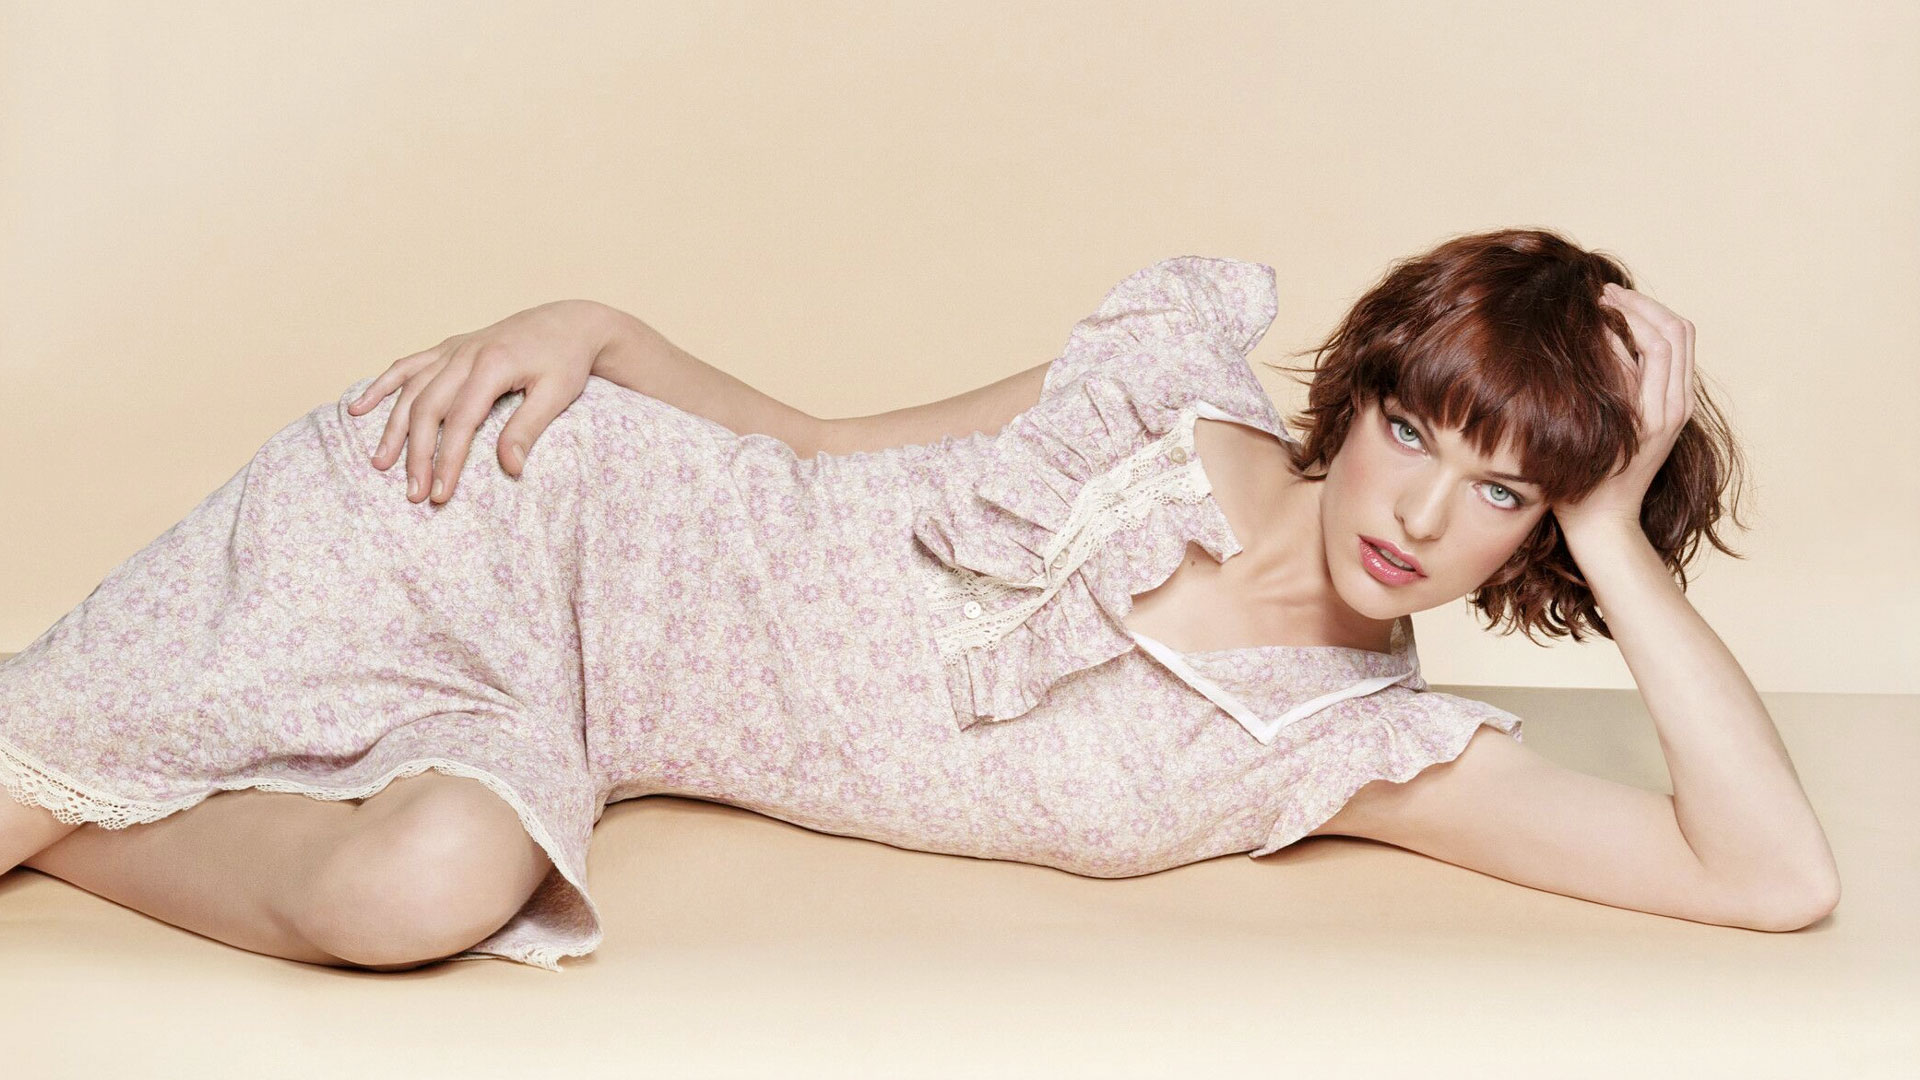 Milla Jovovich Spicy Wallpapers